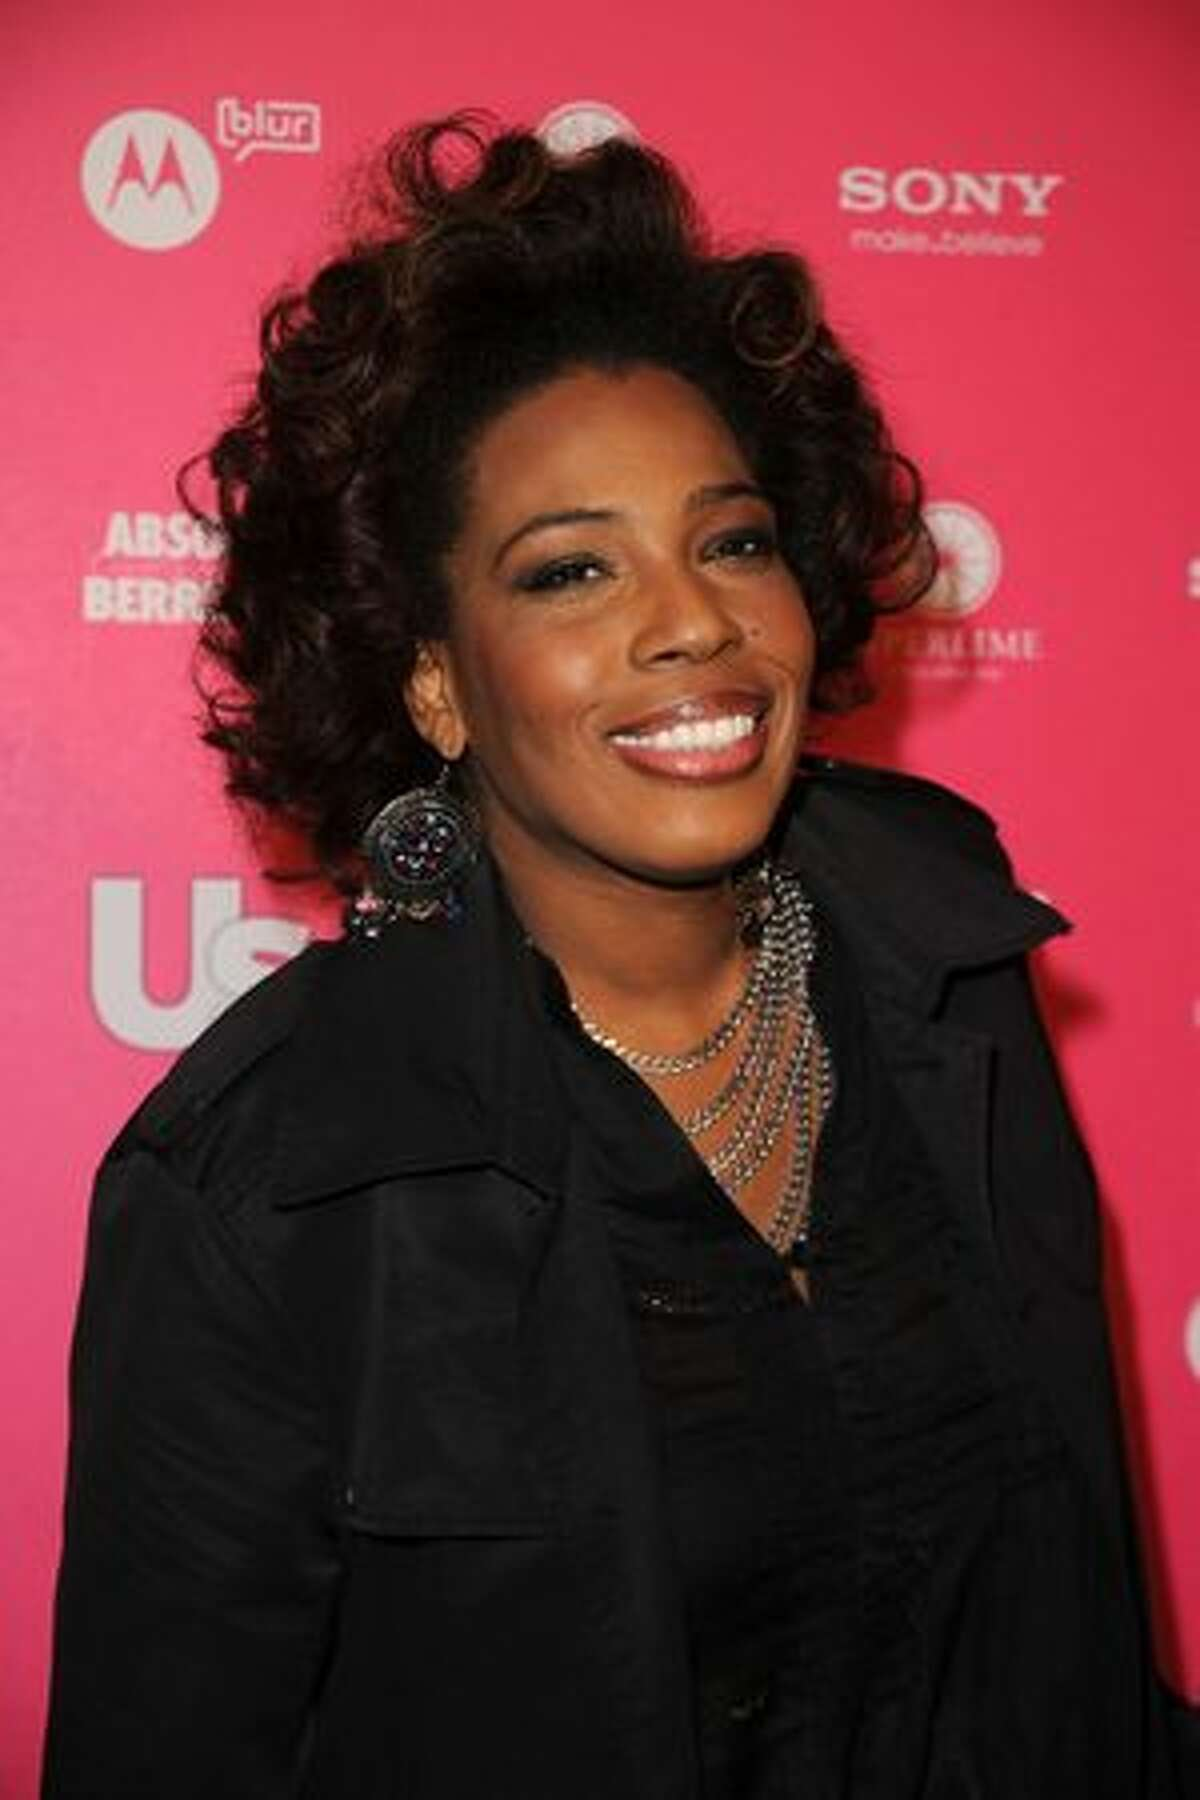 Singer Macy Gray arrives at the Us Weekly Hot Hollywood Style Issue celebration held at Drai's Hollywood at the W Hollywood Hotel in Hollywood, California.